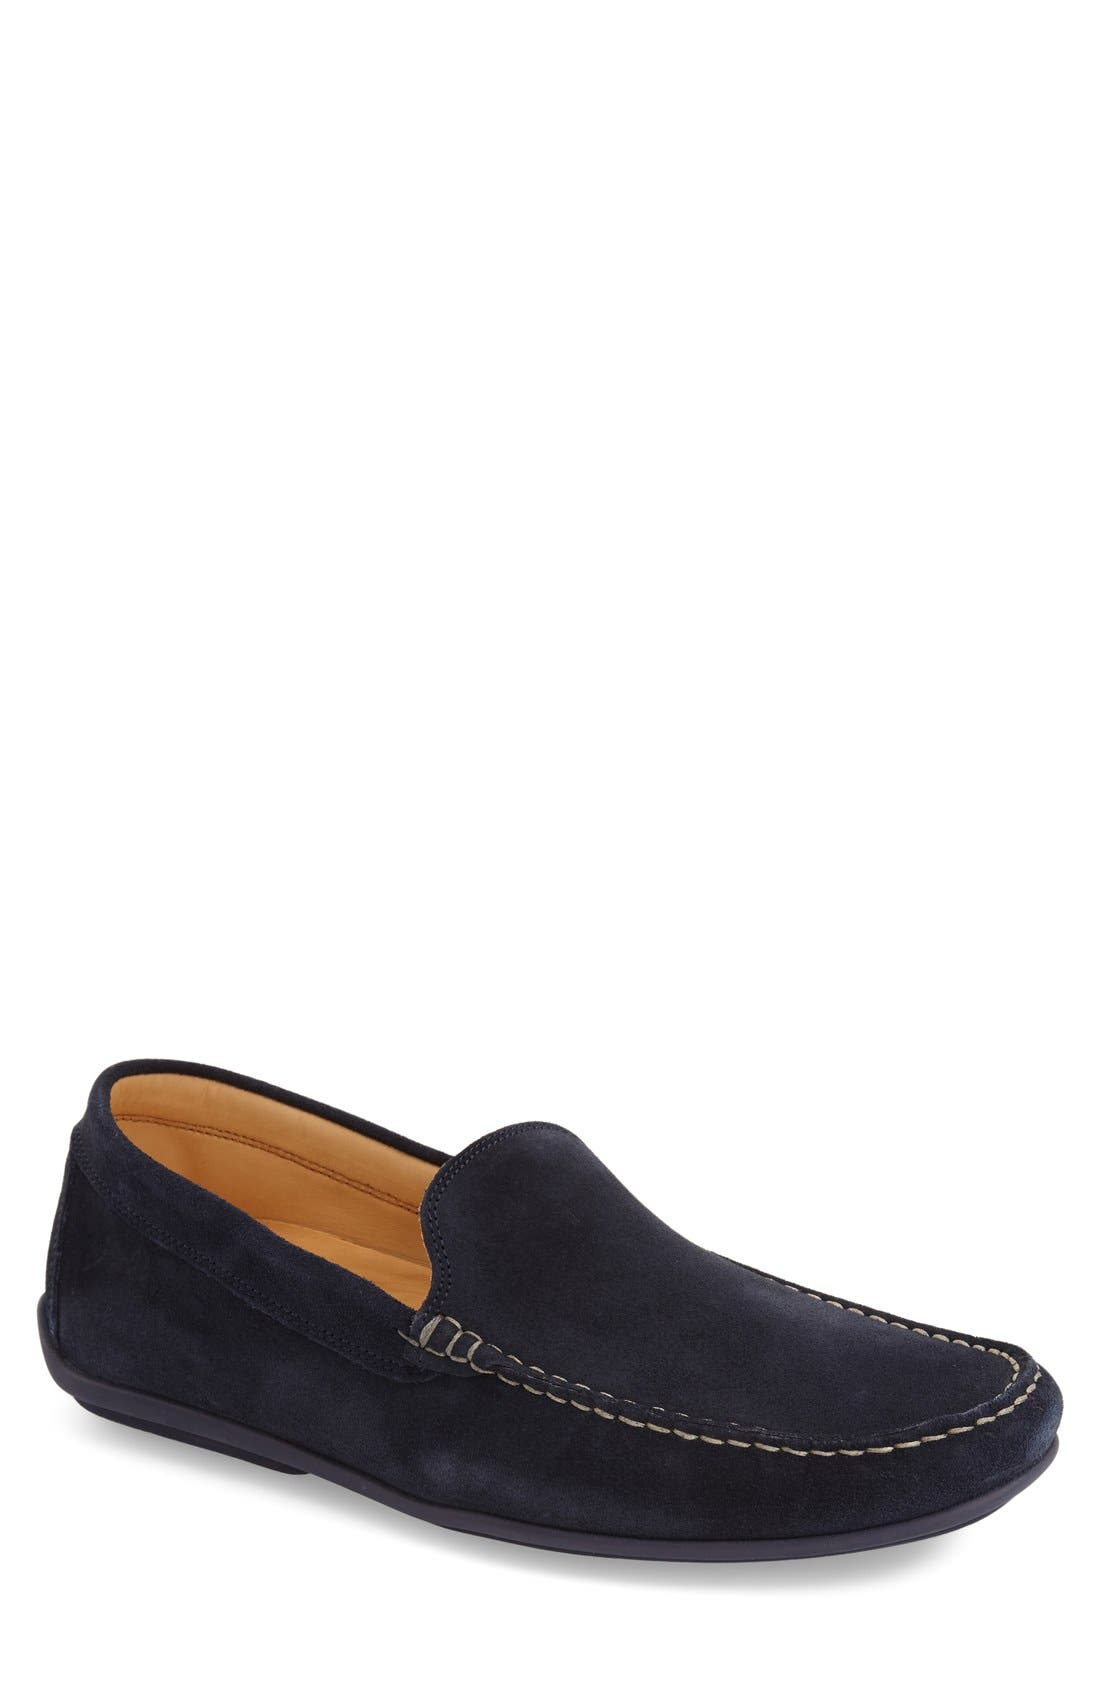 Austen Heller 'Meridians' Loafer (Men)